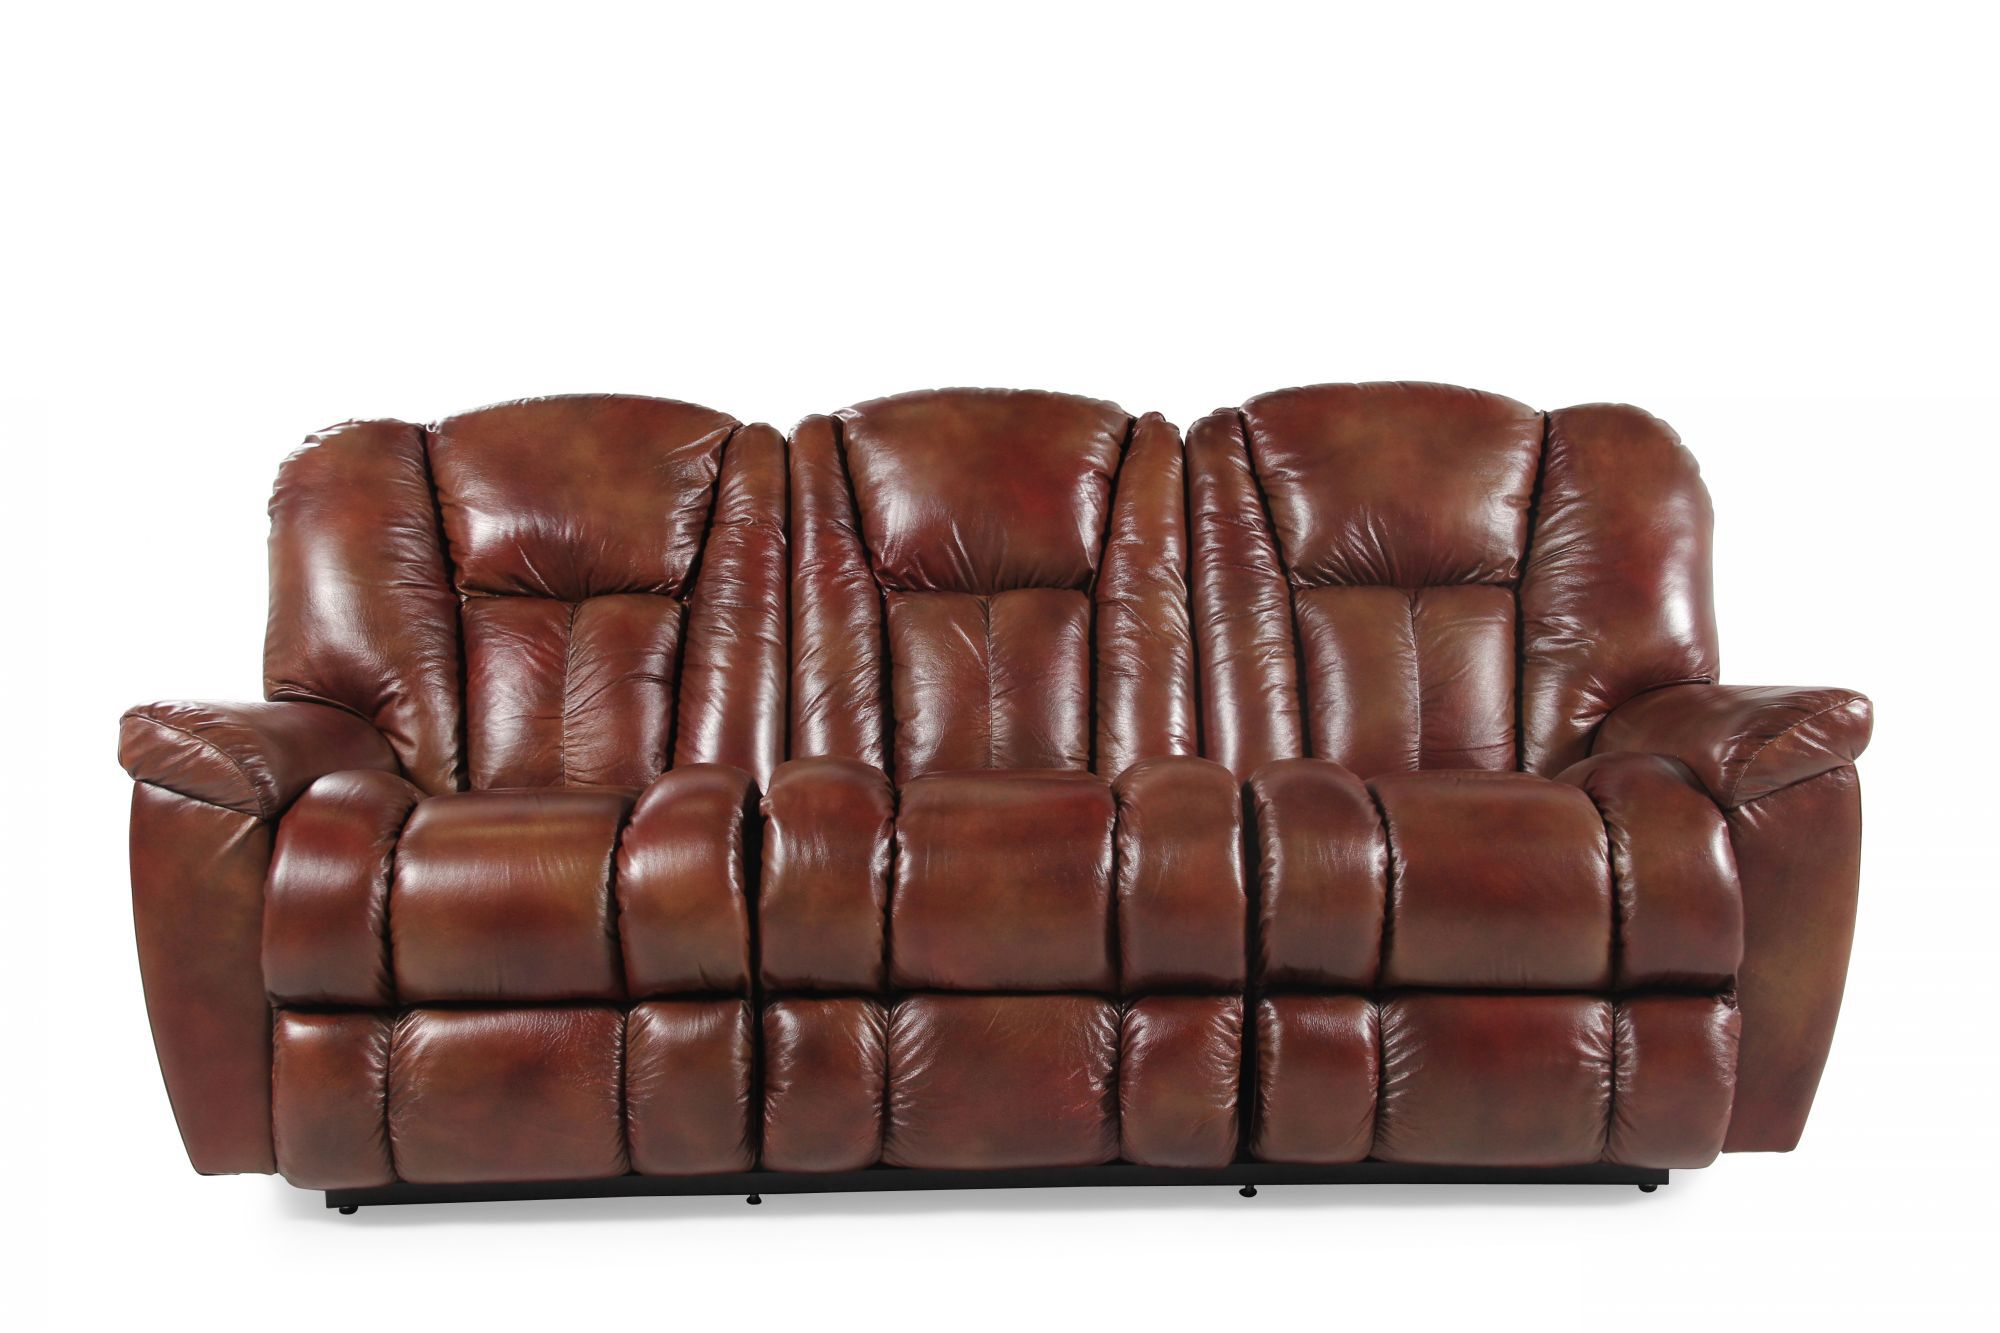 High Quality Leather 87u0026quot; Reclining Sofa In Mahogany Leather 87u0026quot; Reclining Sofa  In Mahogany